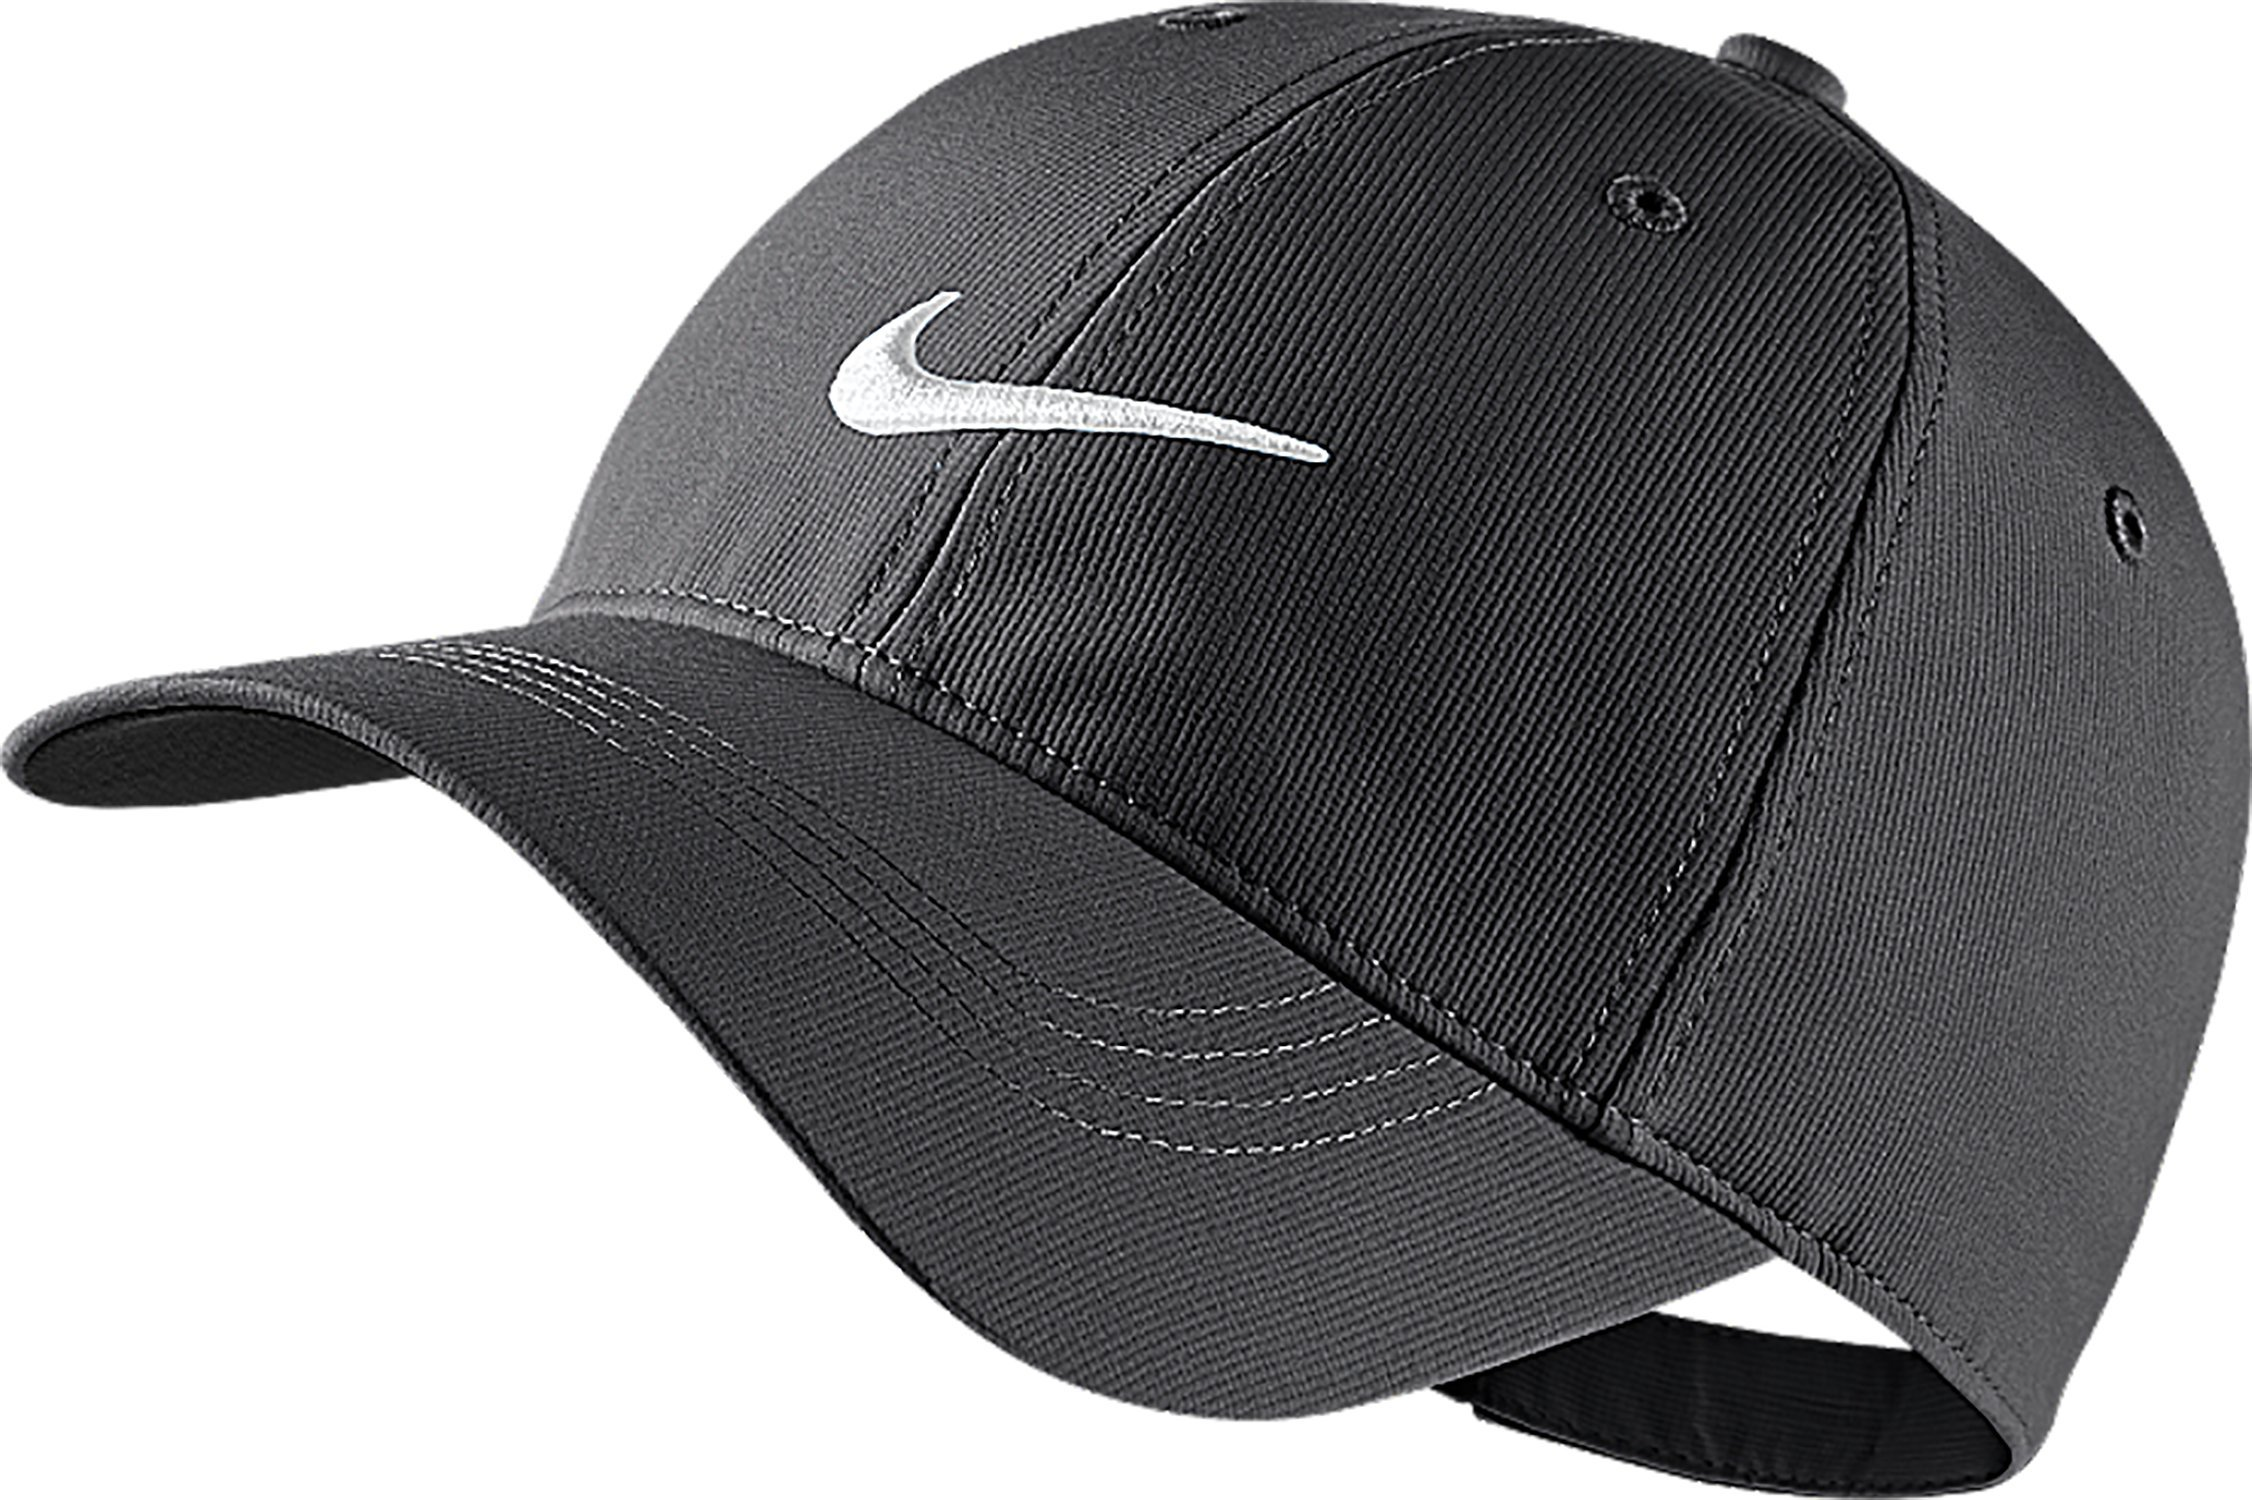 Nike Unisex Legacy 91 Tech Cap Dark Grey/White,One Size by Nike